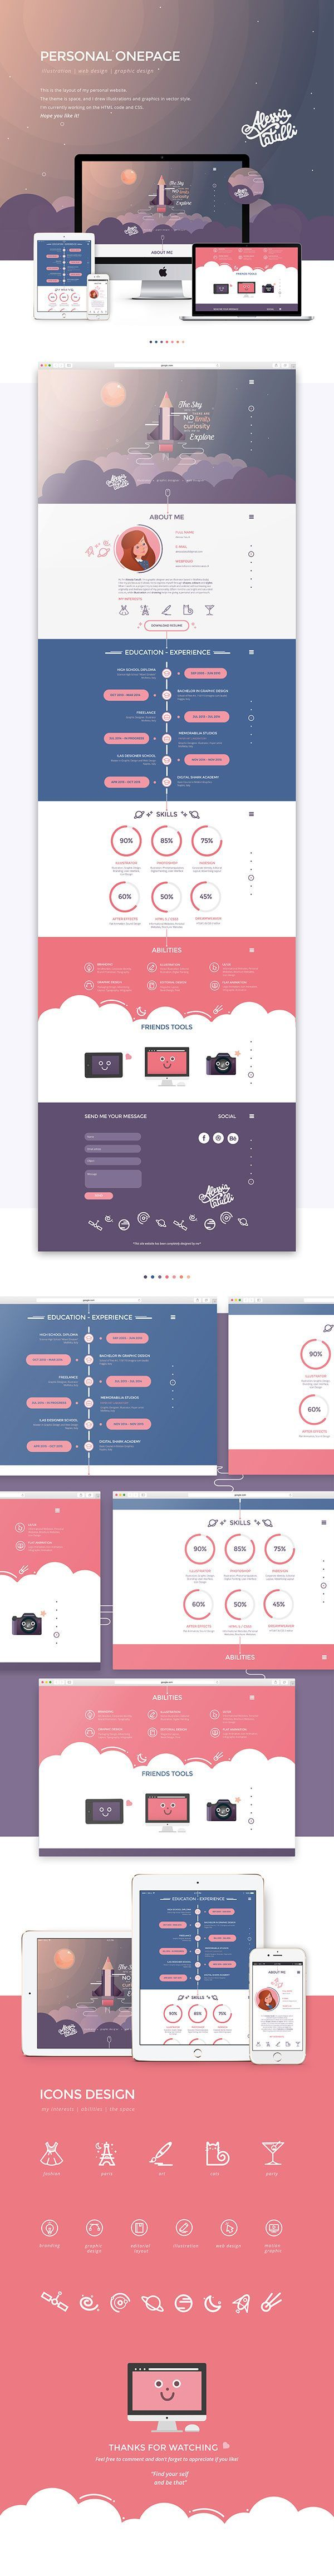 183 best creative design images on pinterest graph design this is the layout of my personal websitee theme is space and i fandeluxe Gallery